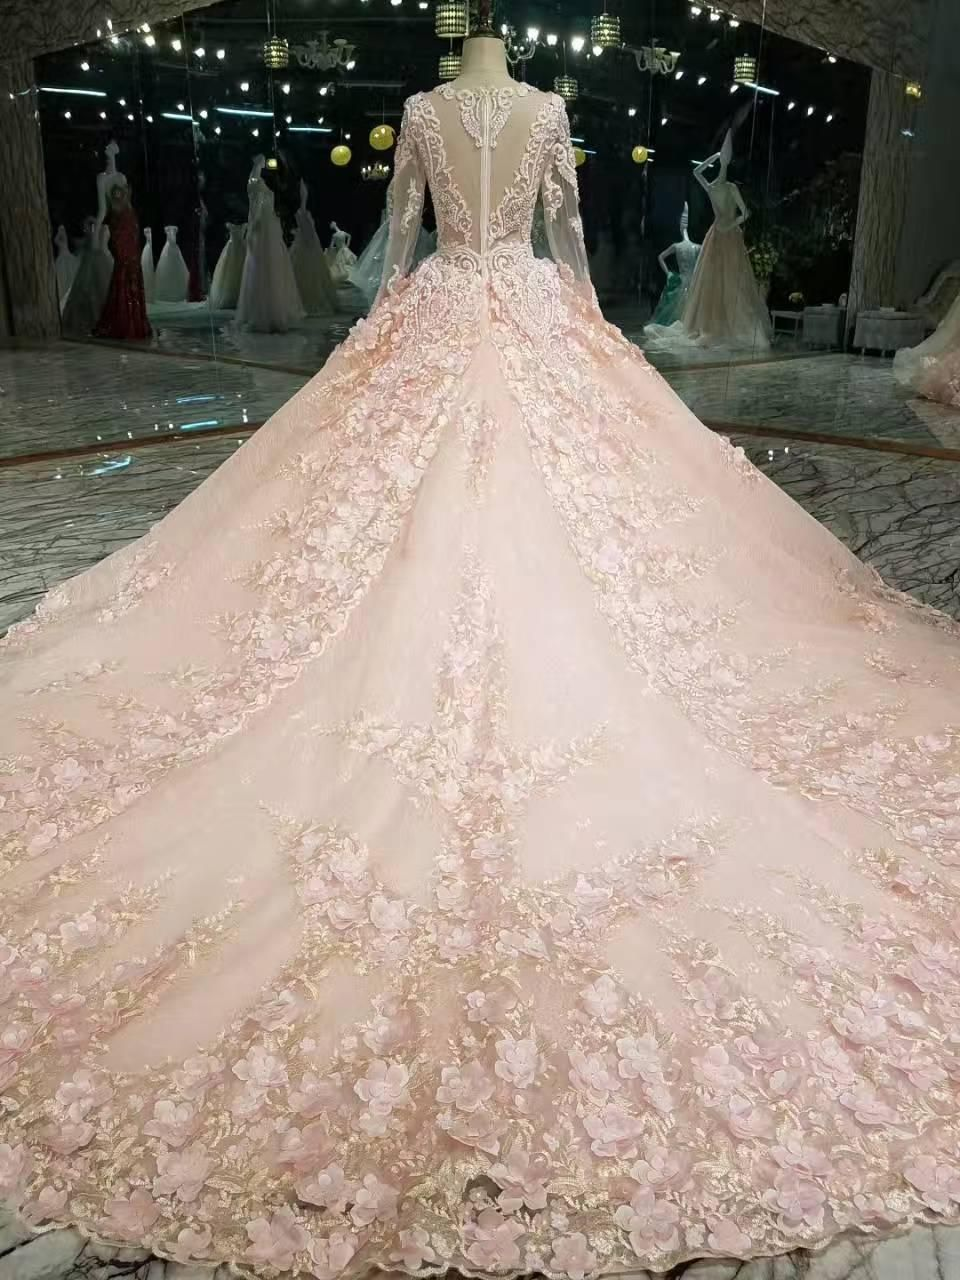 Real Photos Long Sleeveless O Neck Luxury Long Train Lace Beaded Crystals Bow Wedding Dresses 2017 Bridal Dress Gown Pink Wedding Dresses Plus Size Wedding Dres Bow Wedding Dress Pink Wedding [ 1280 x 960 Pixel ]